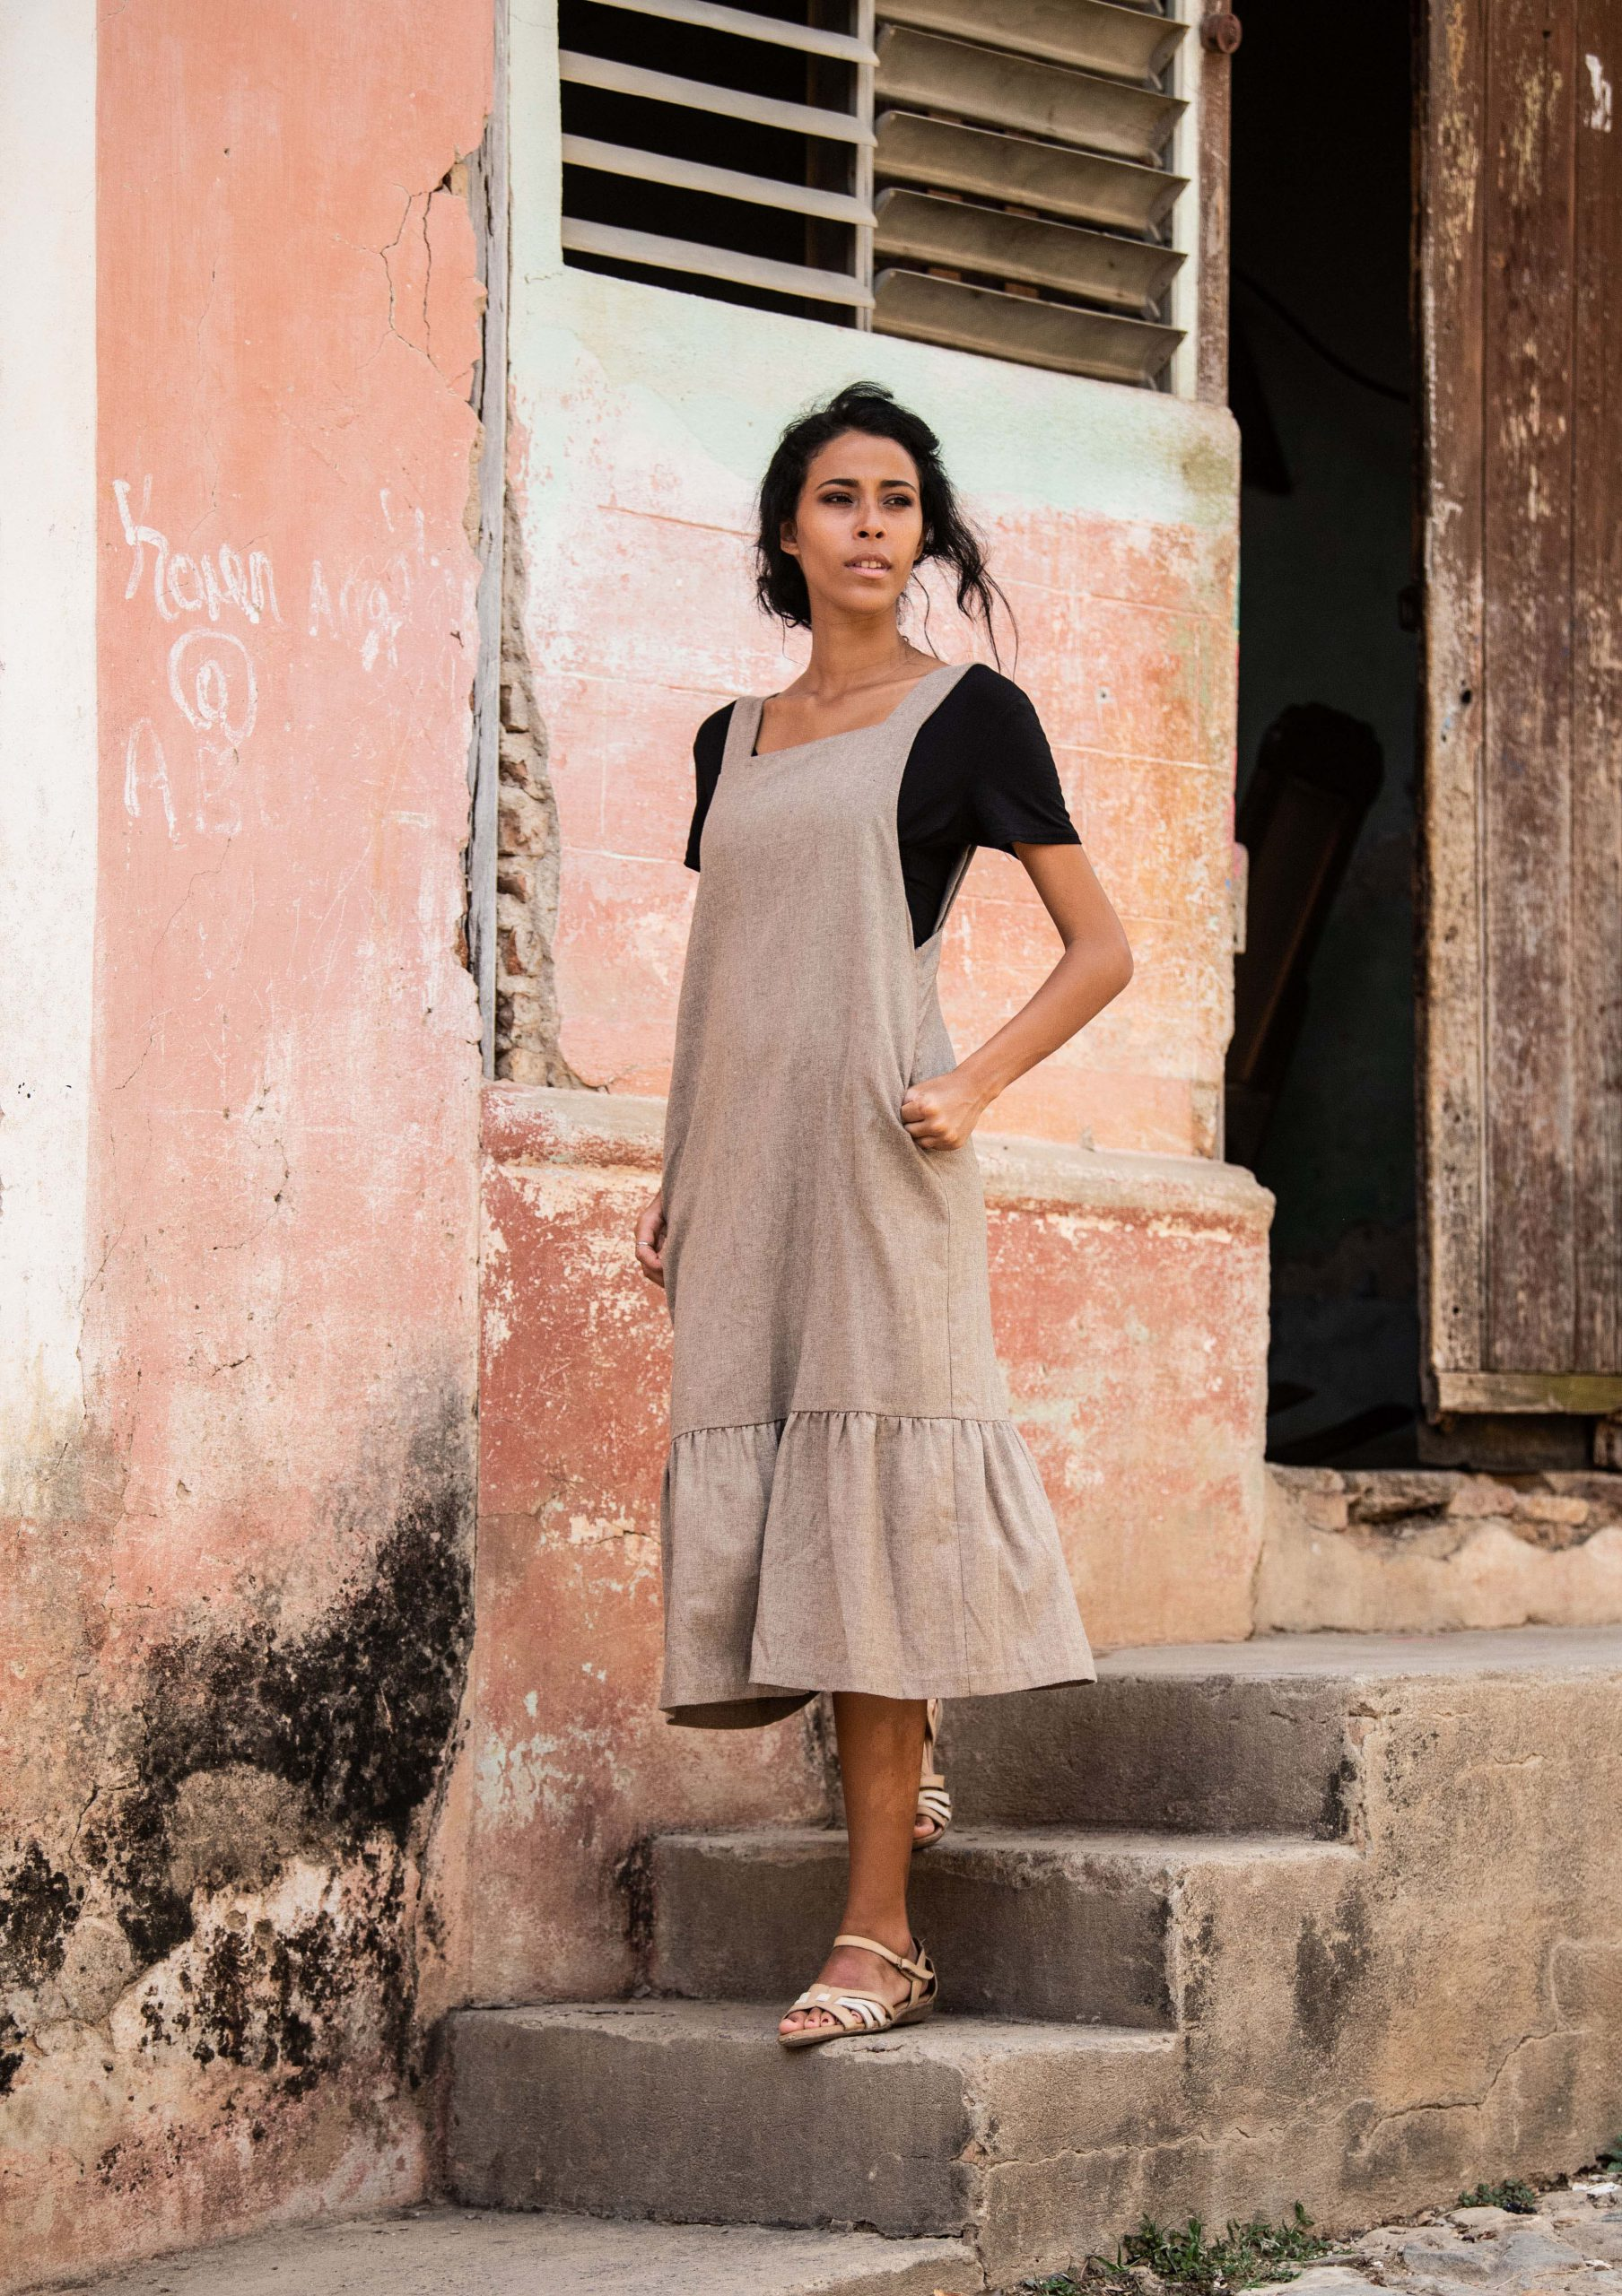 Fashion in Cuba by Peter Mueller Photography 101